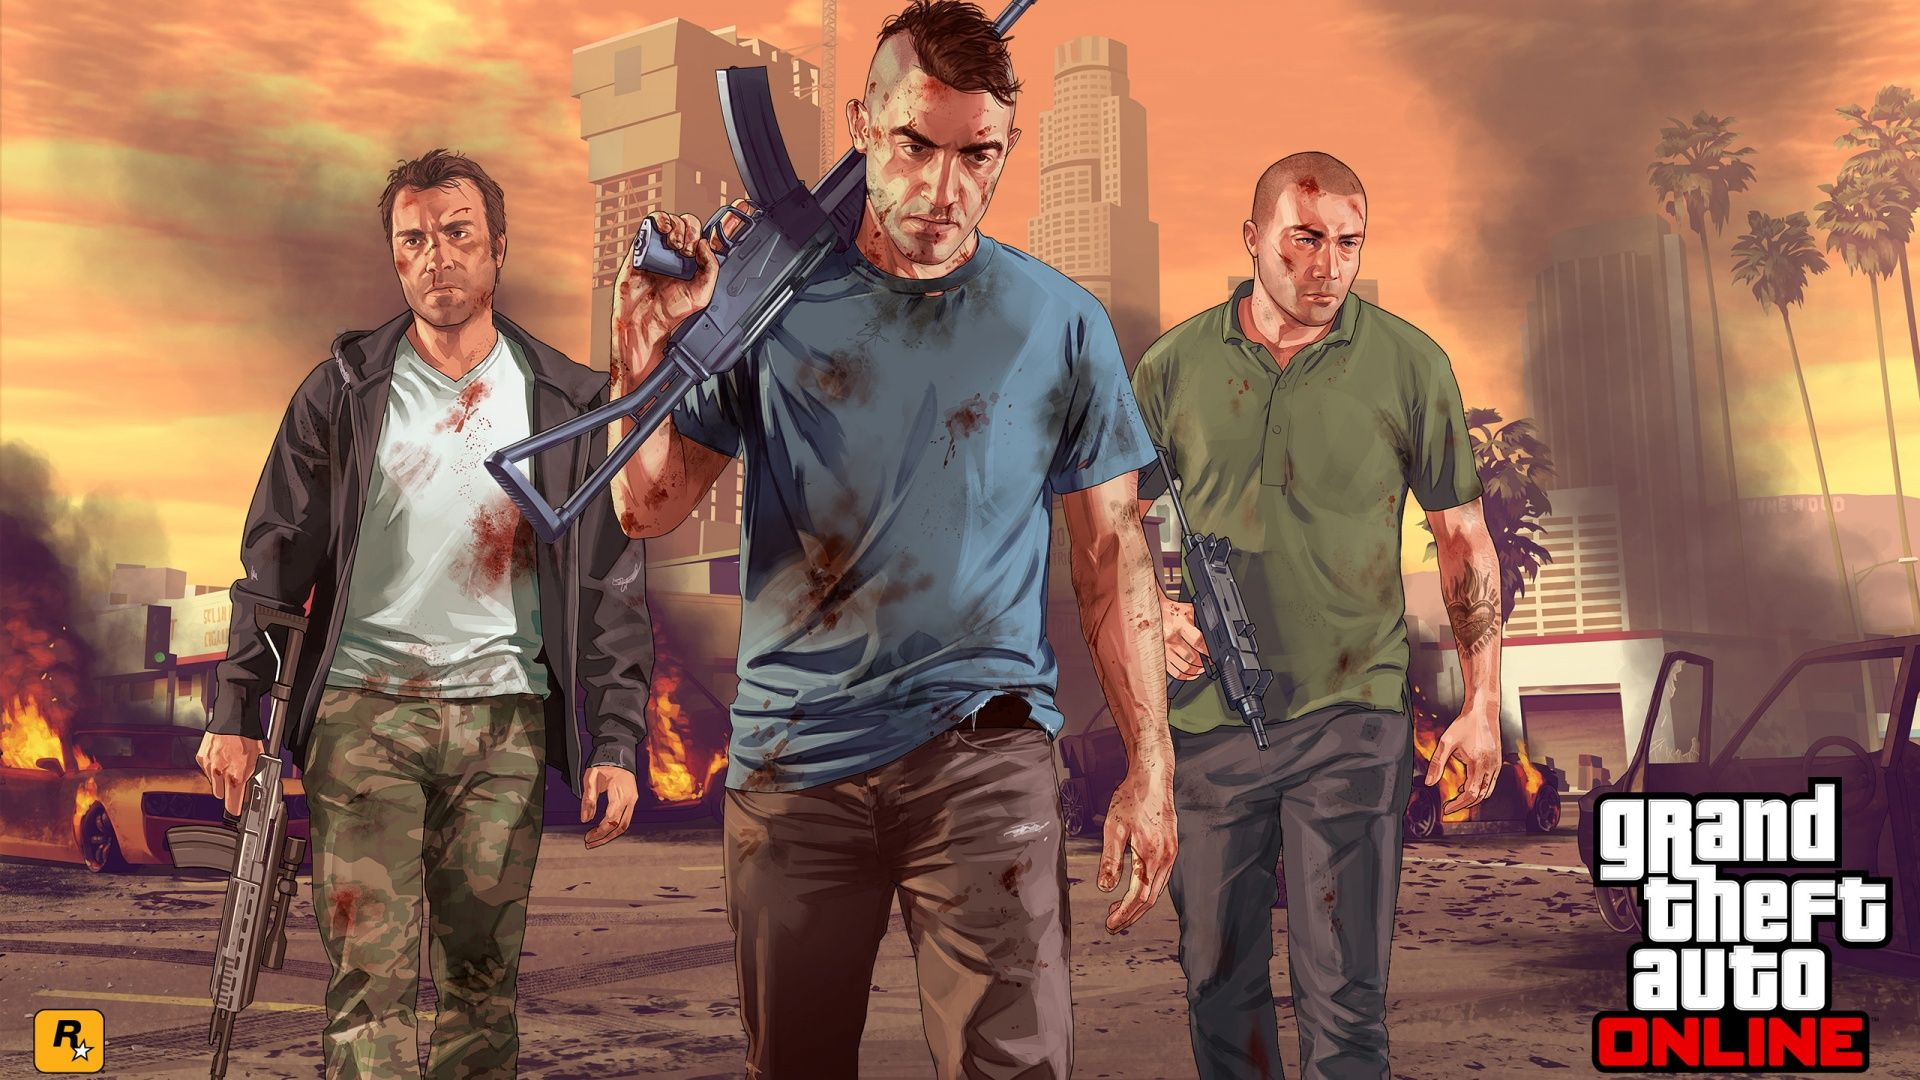 images of grand theft auto characters